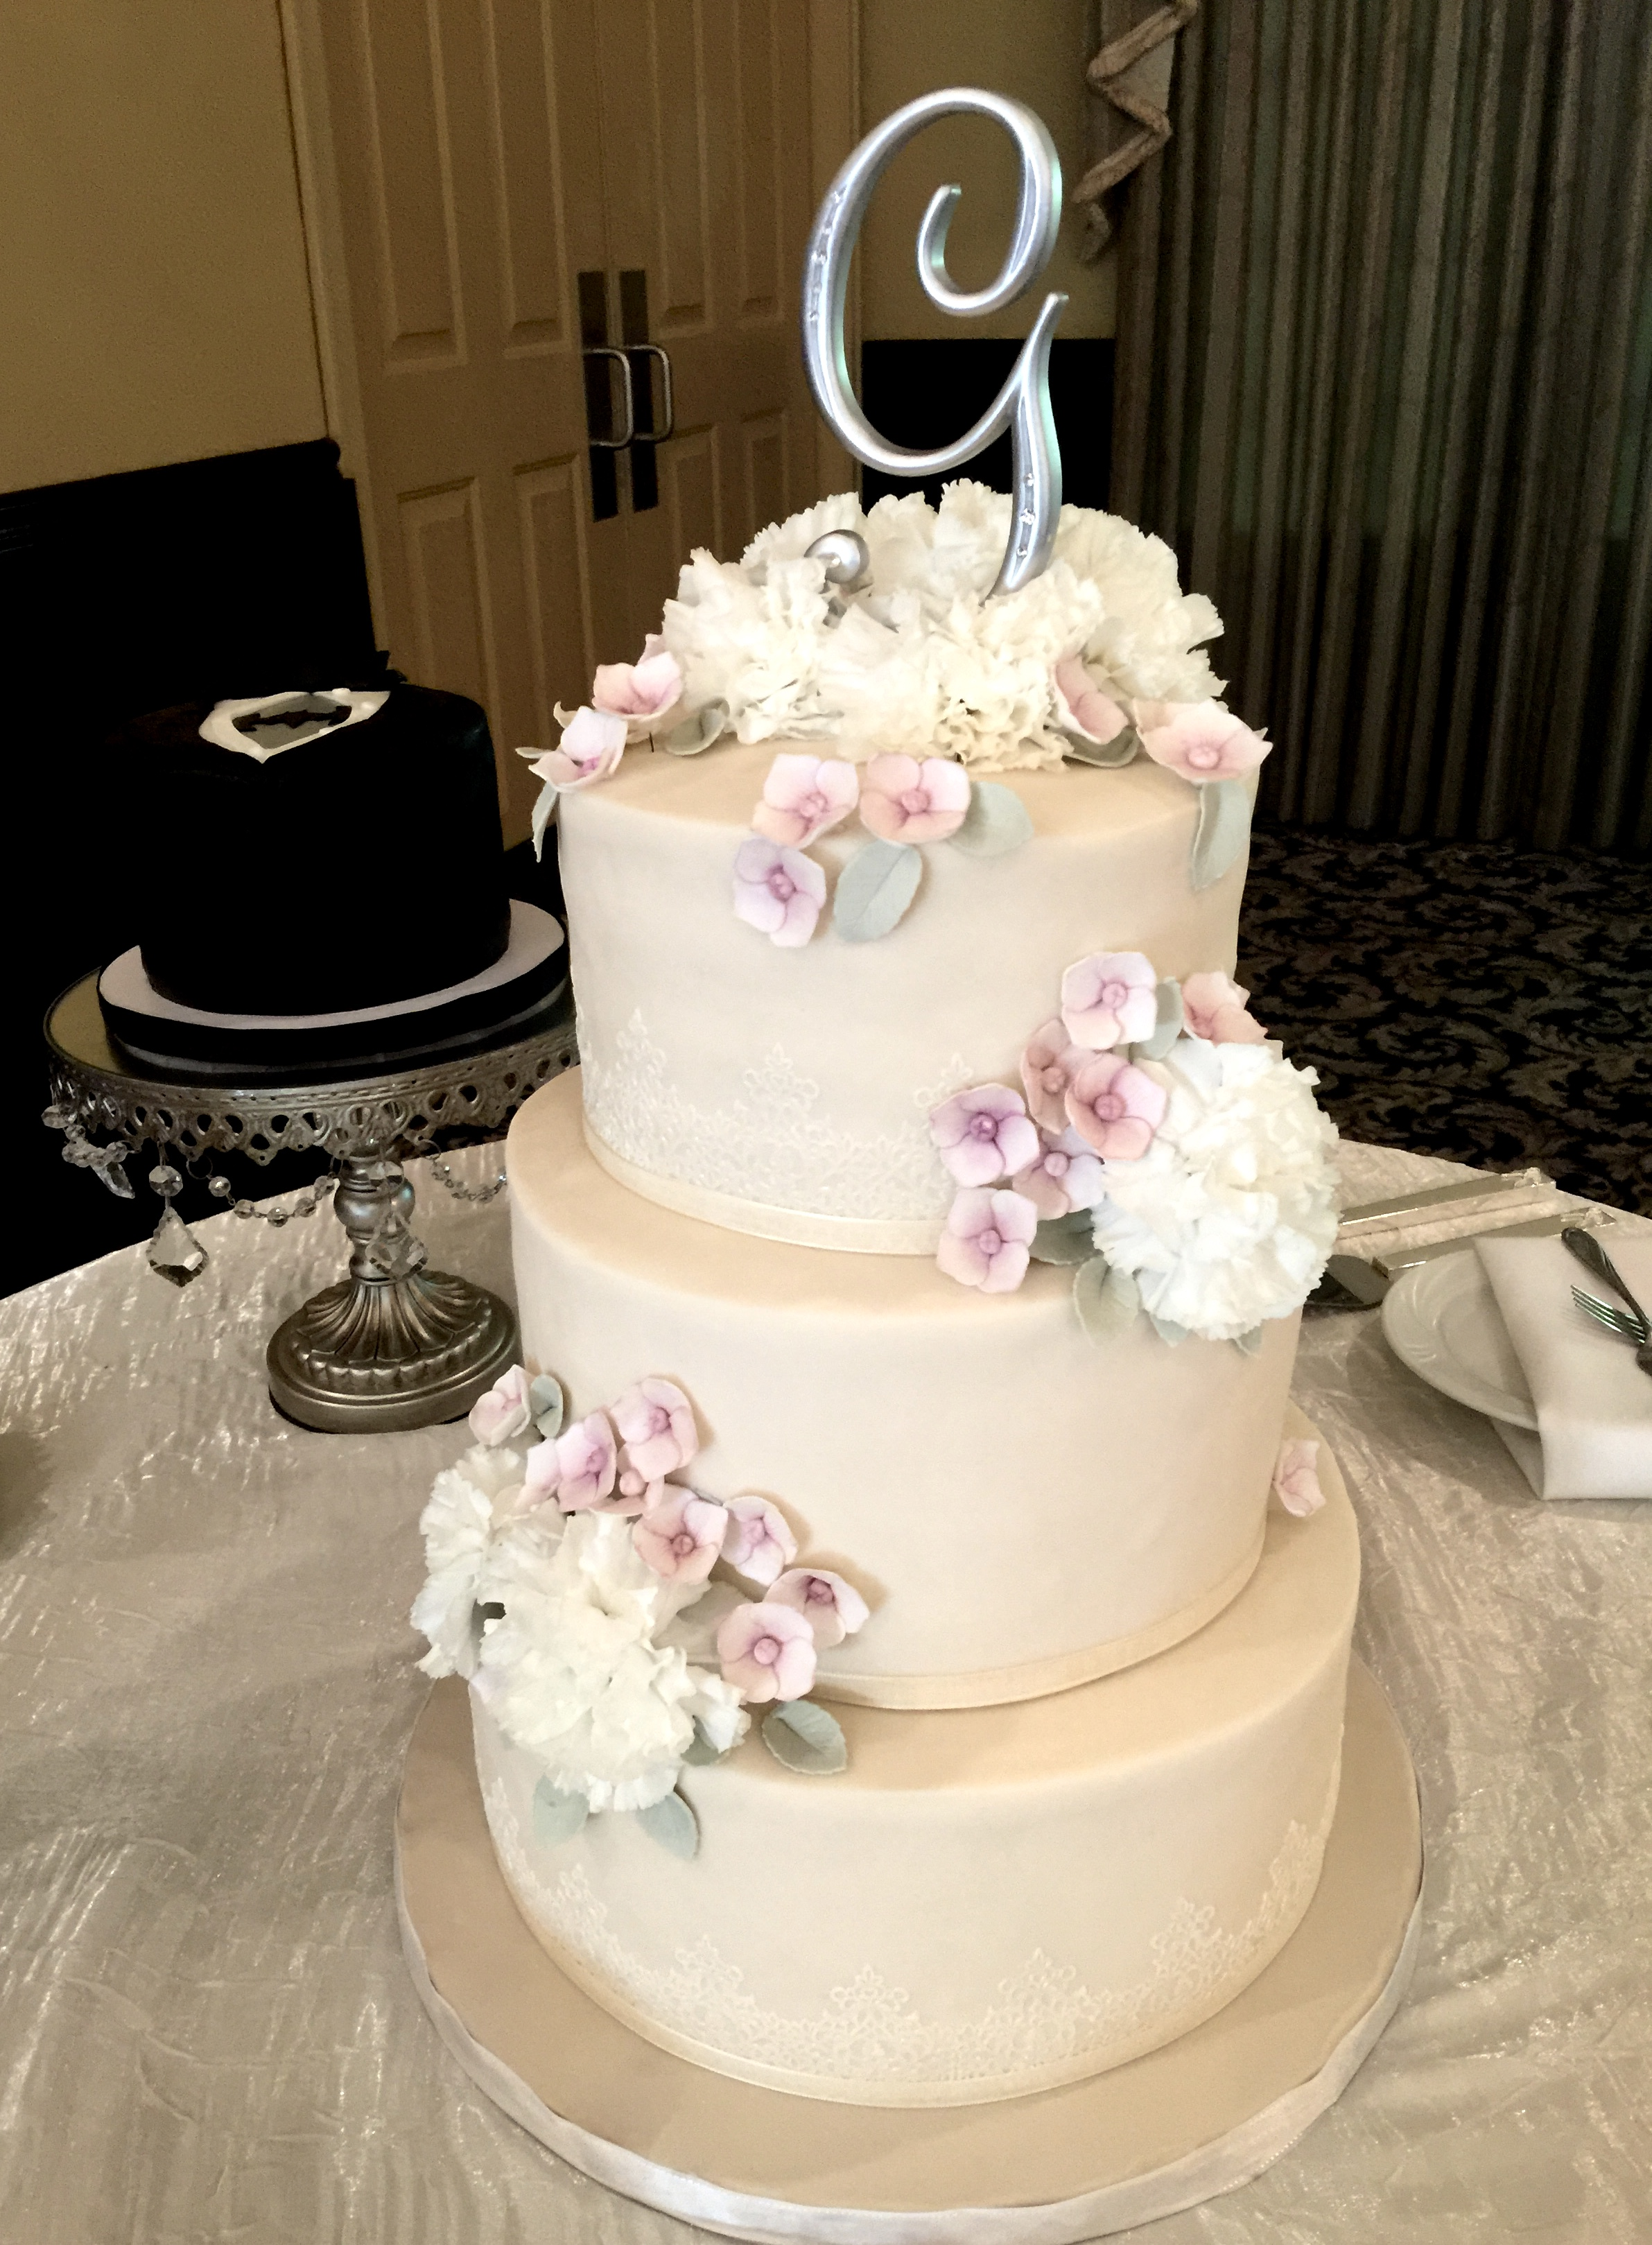 Champagne Cake with Sugar Hydrangeas